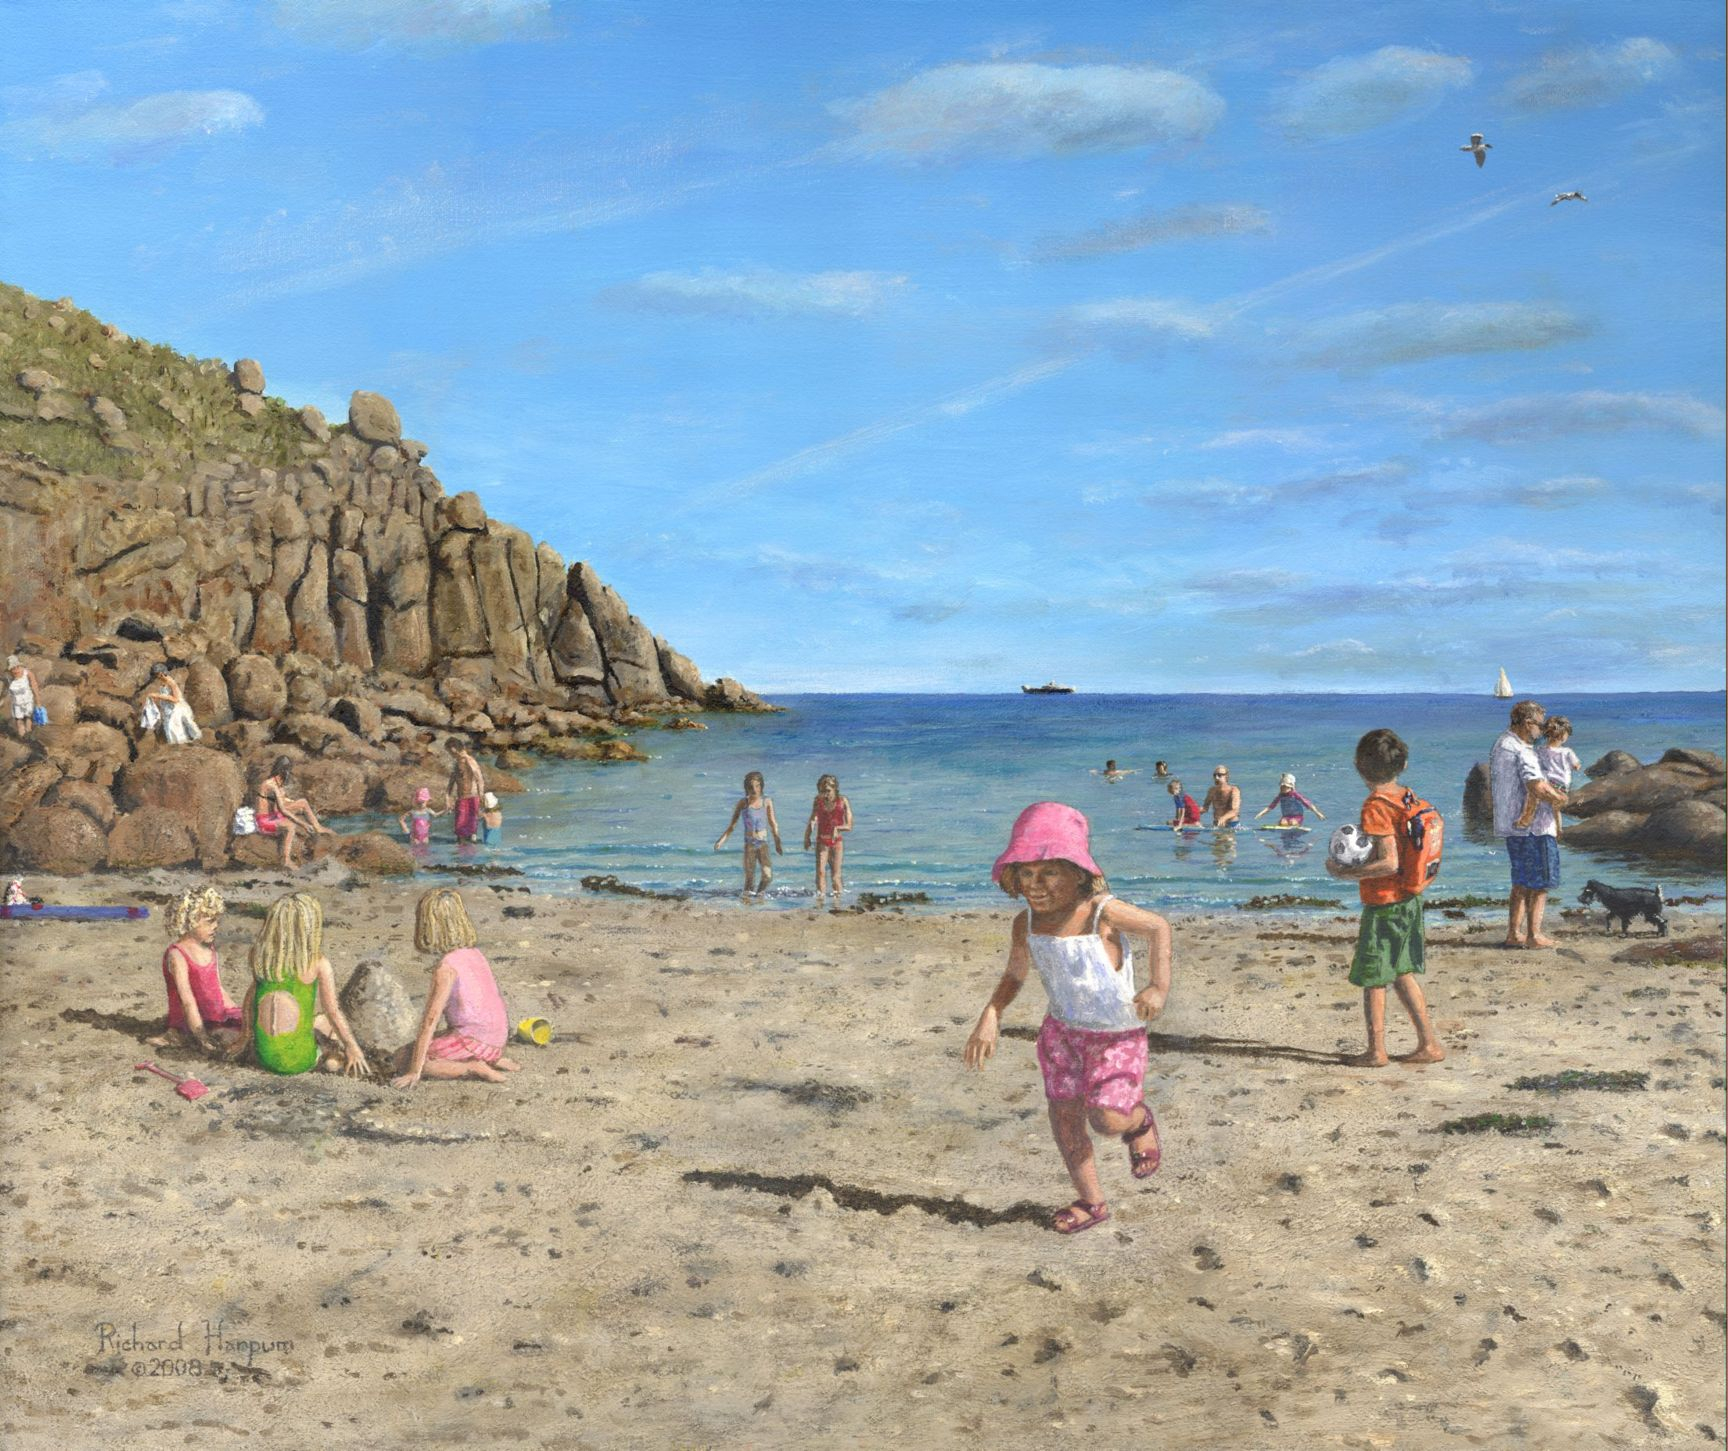 Painting - Time to go Home (Porthgwarra Beach, Cornwall)